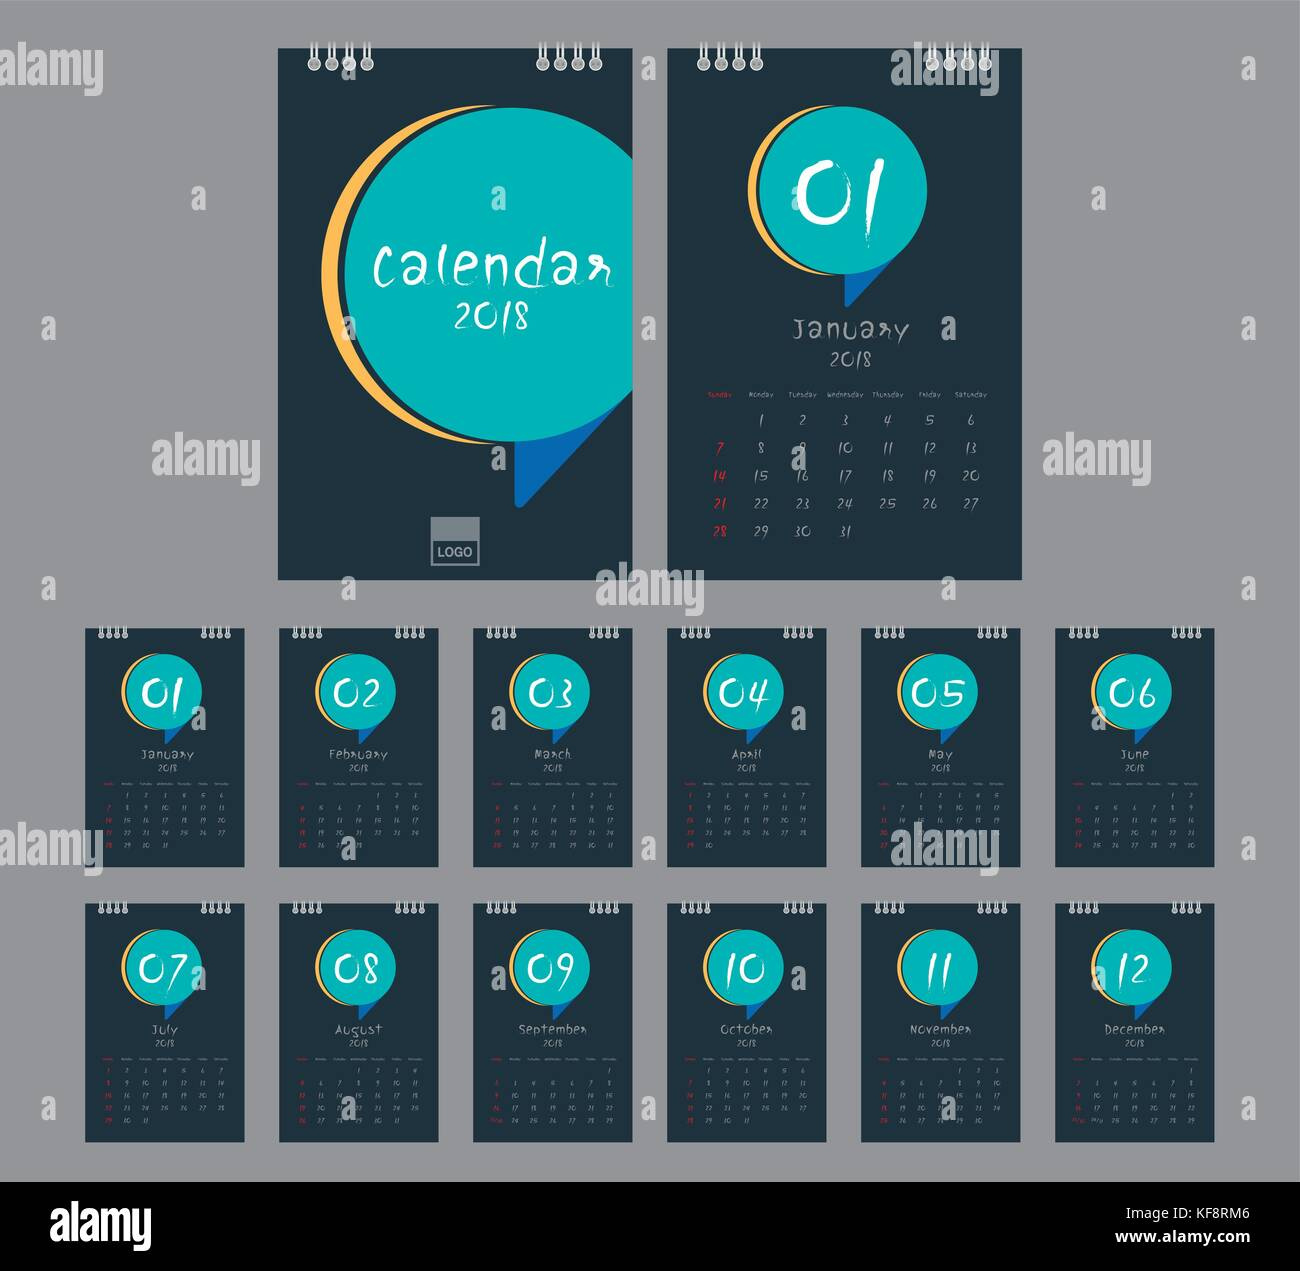 2018 calendar desk calendar modern design template with place for photo week starts sunday a5 or a4 paper size vector illustration